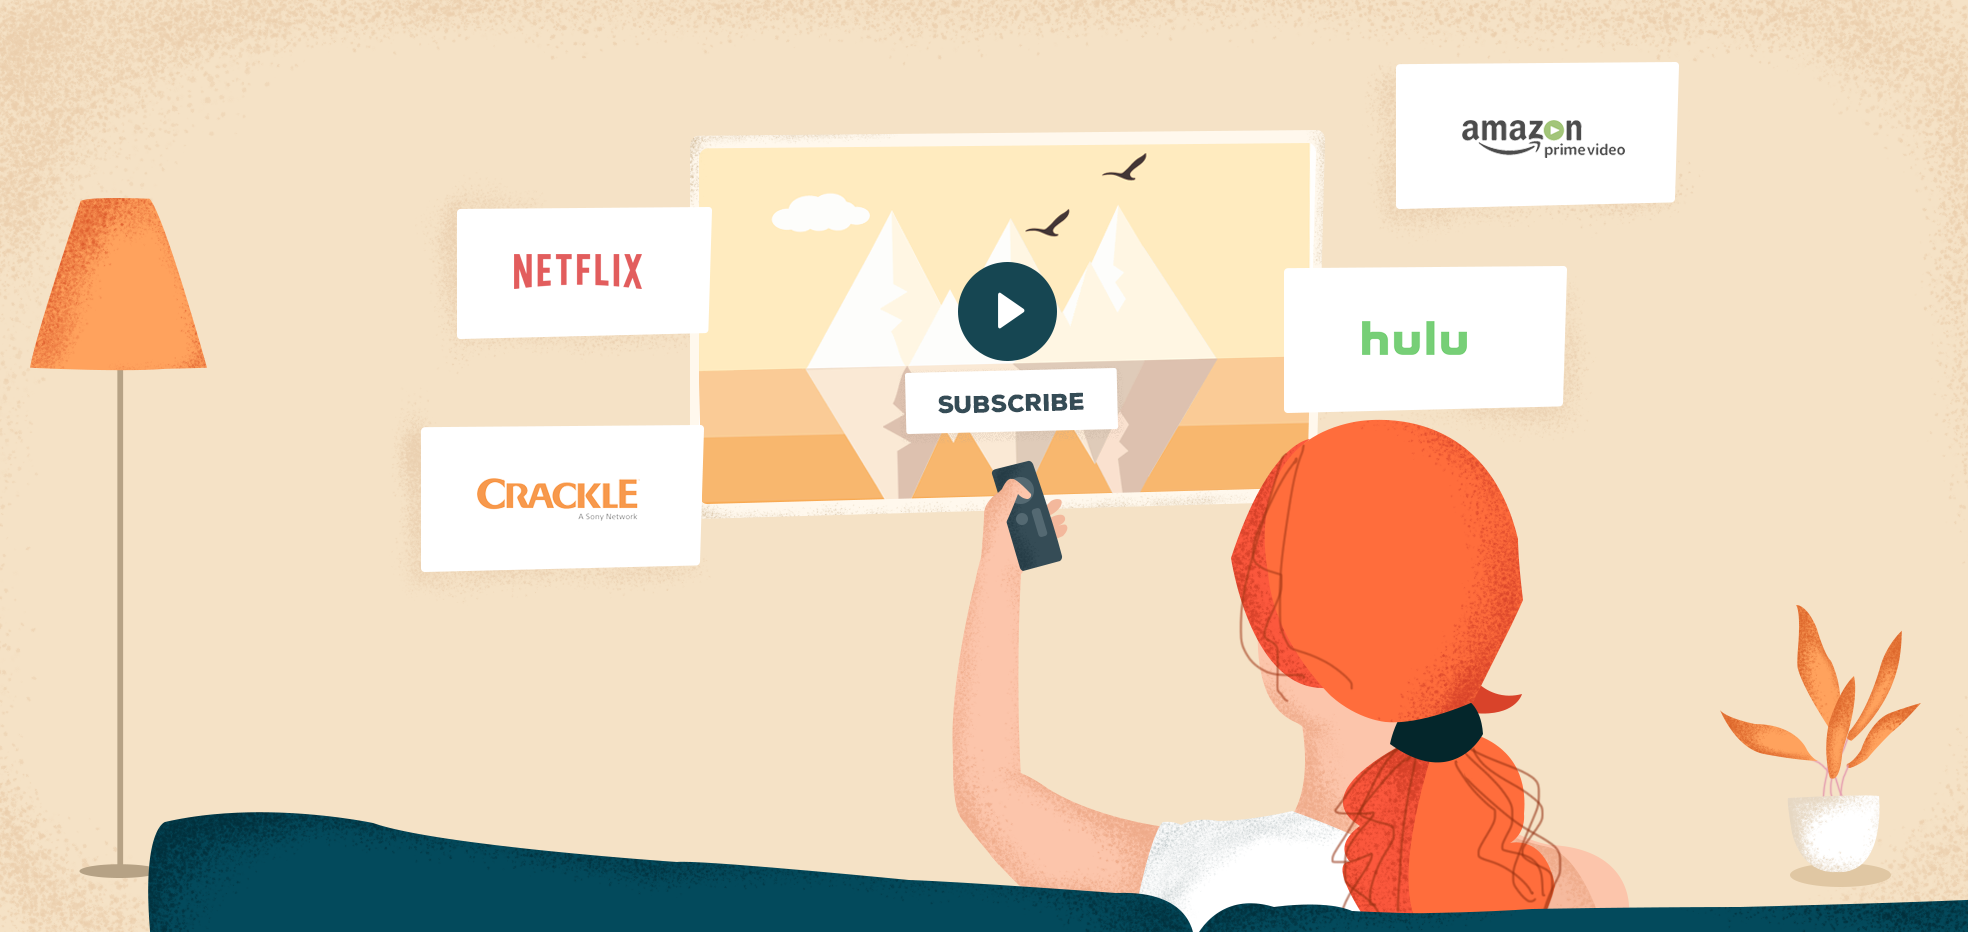 SVOD is booming and here's why